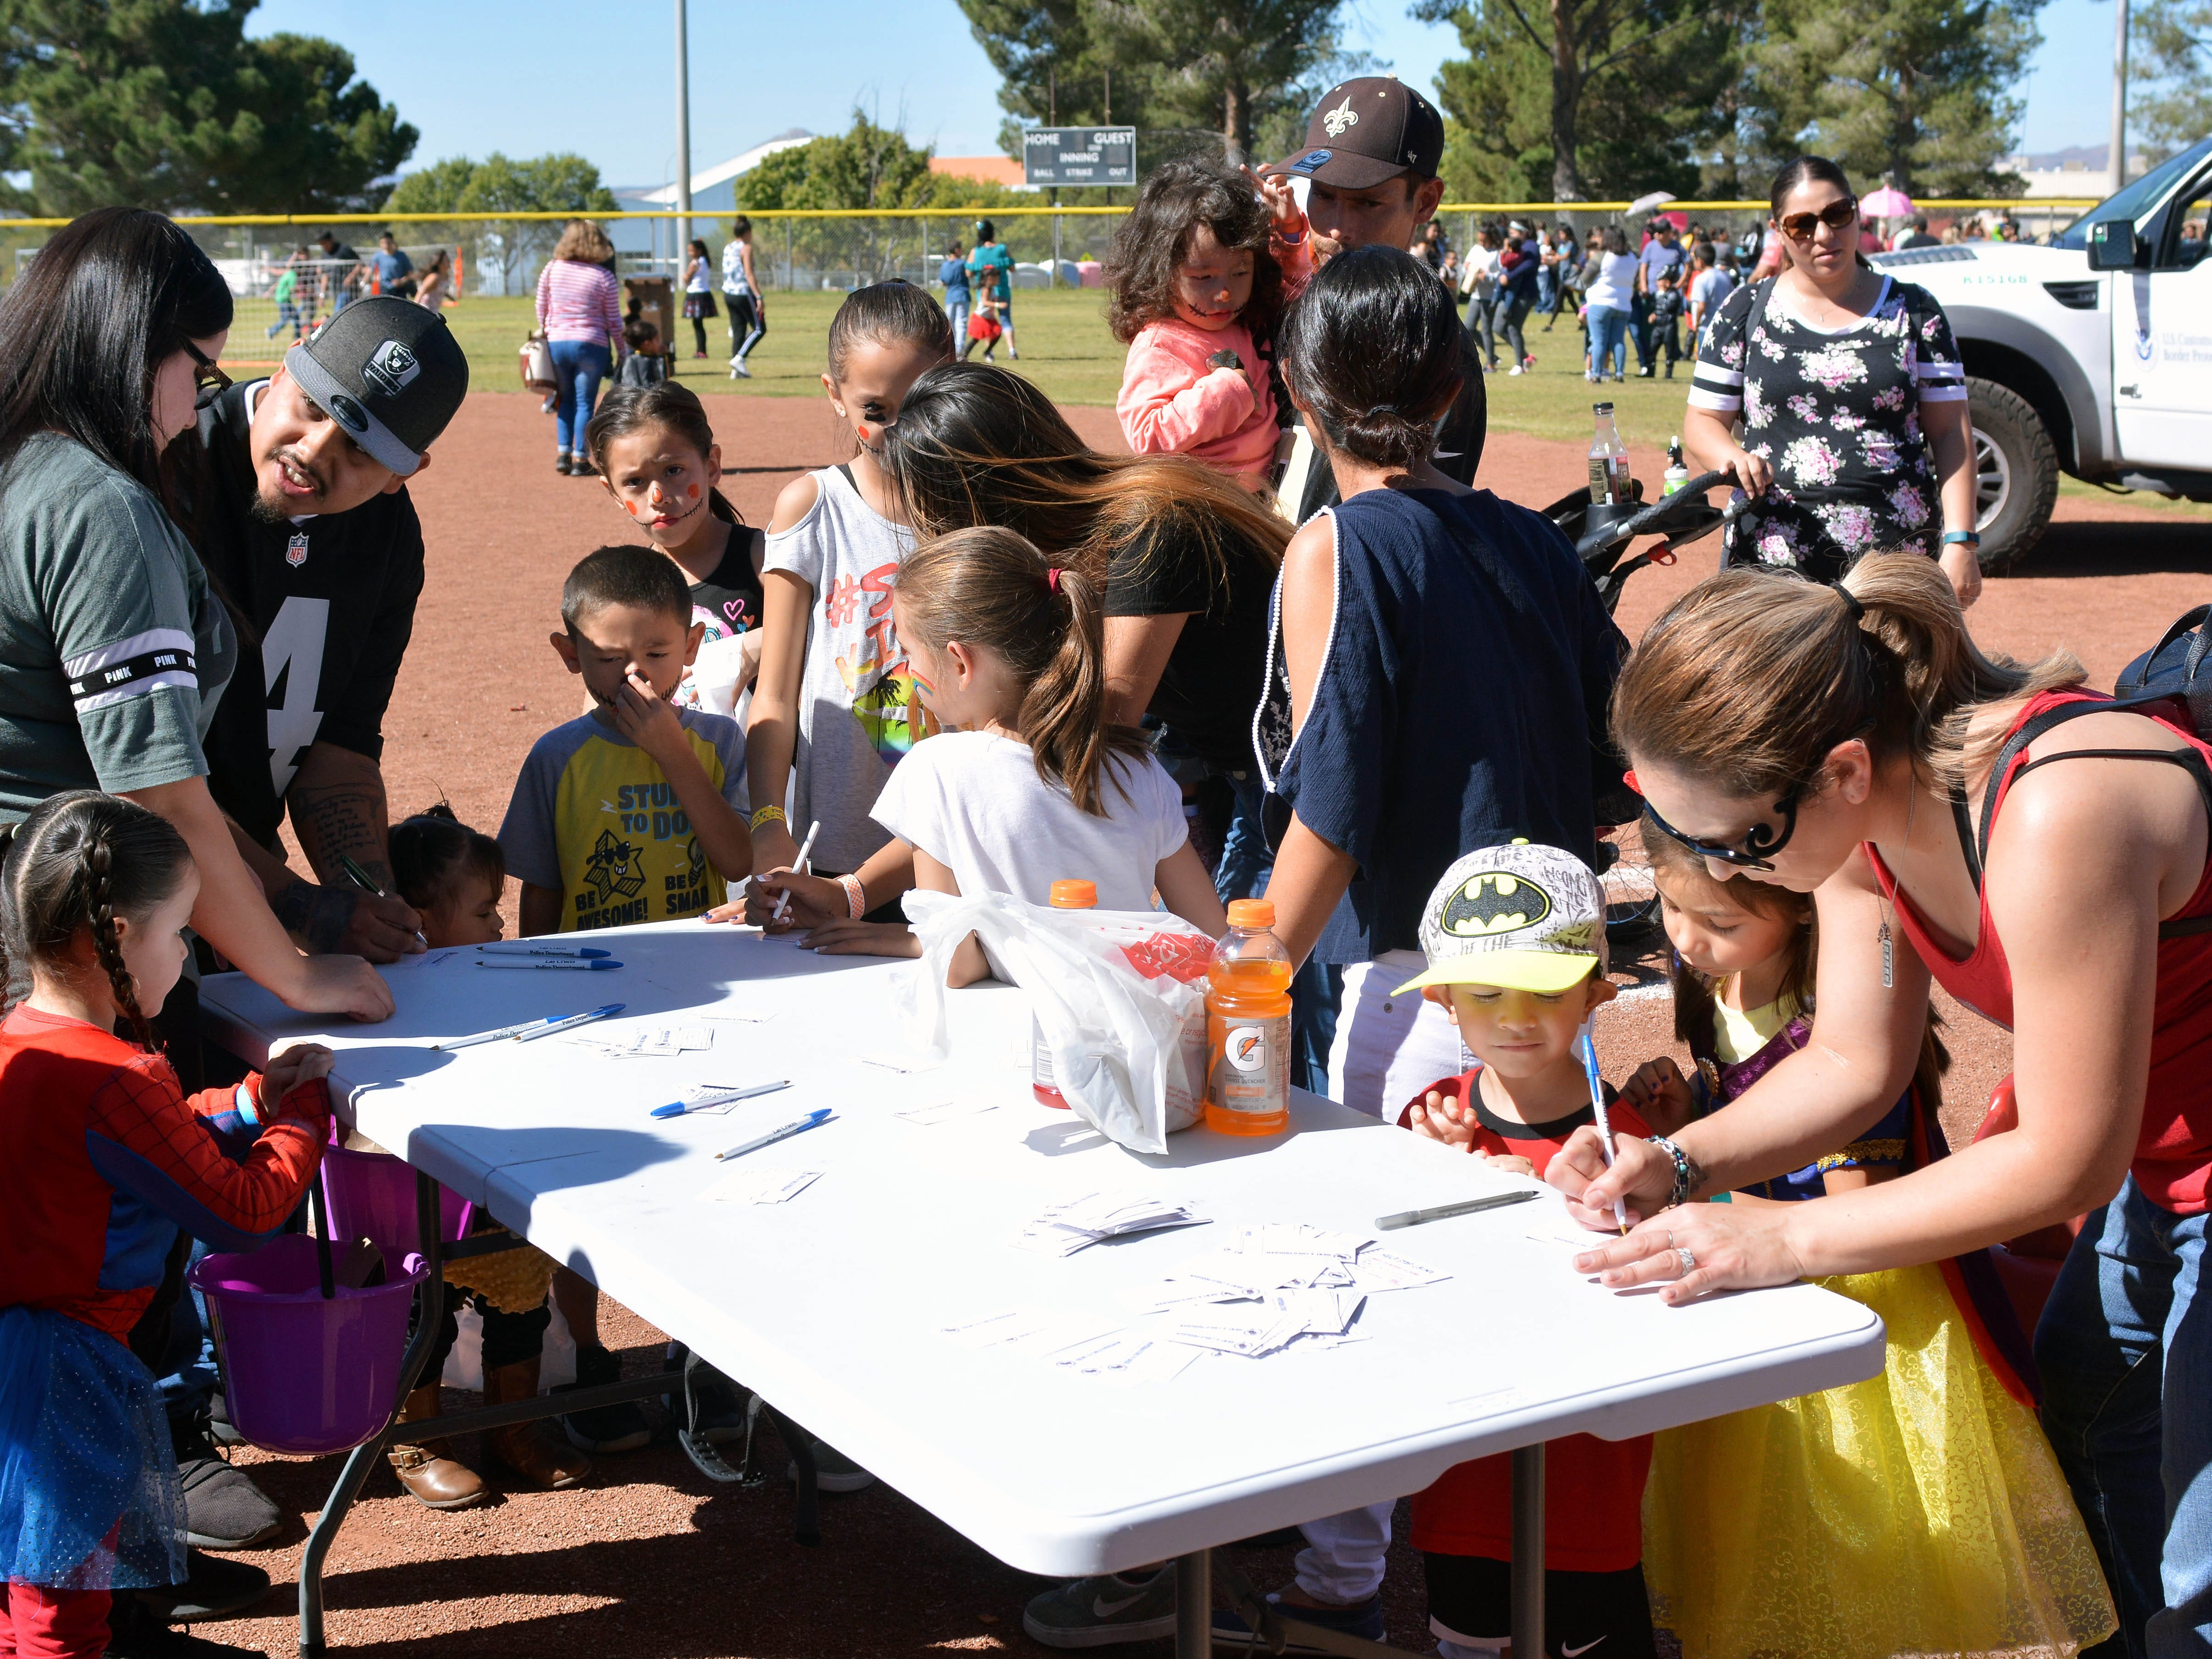 Parents register children by age group for this year's 14th annual Great Pumpkin Candy Drop, held Sunday, Oct, 28 at Maag Park.